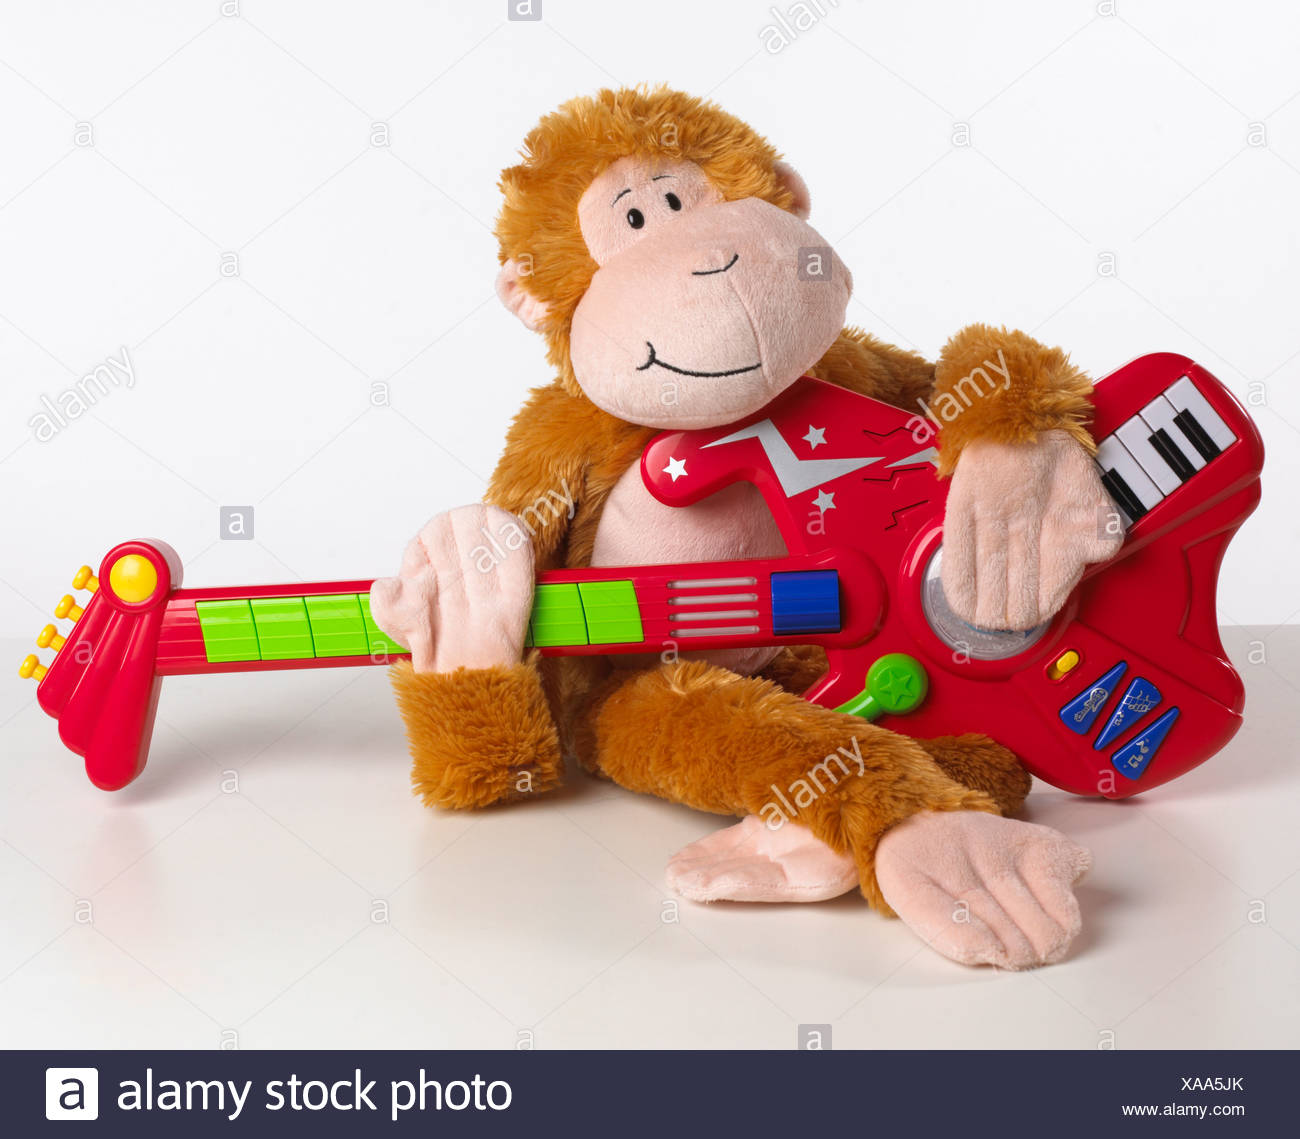 Toy monkey playing guitar, close-up - Stock Image